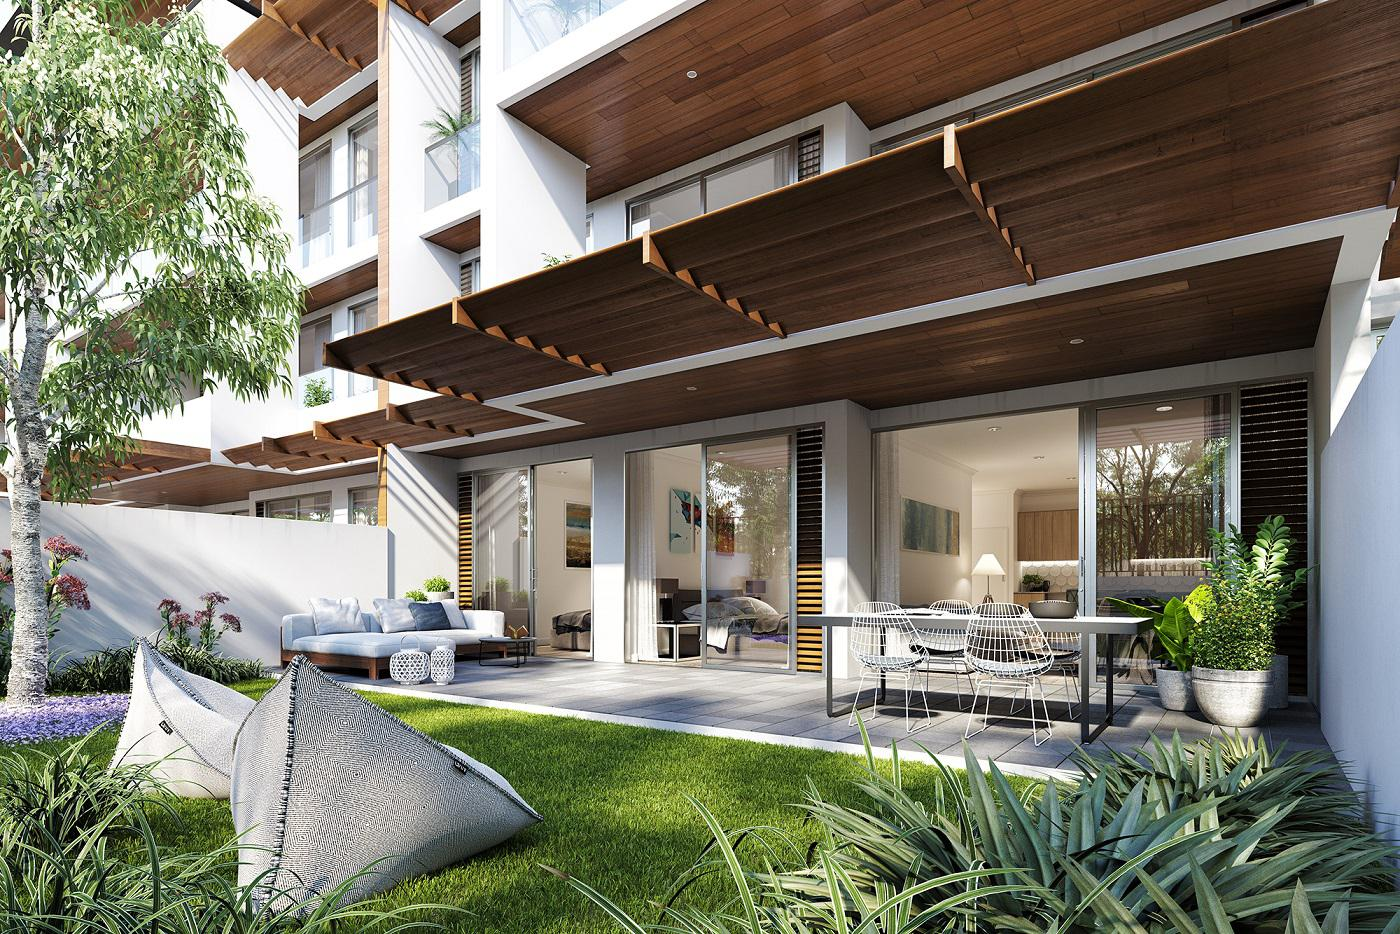 Affinity Caringbah garden apartment